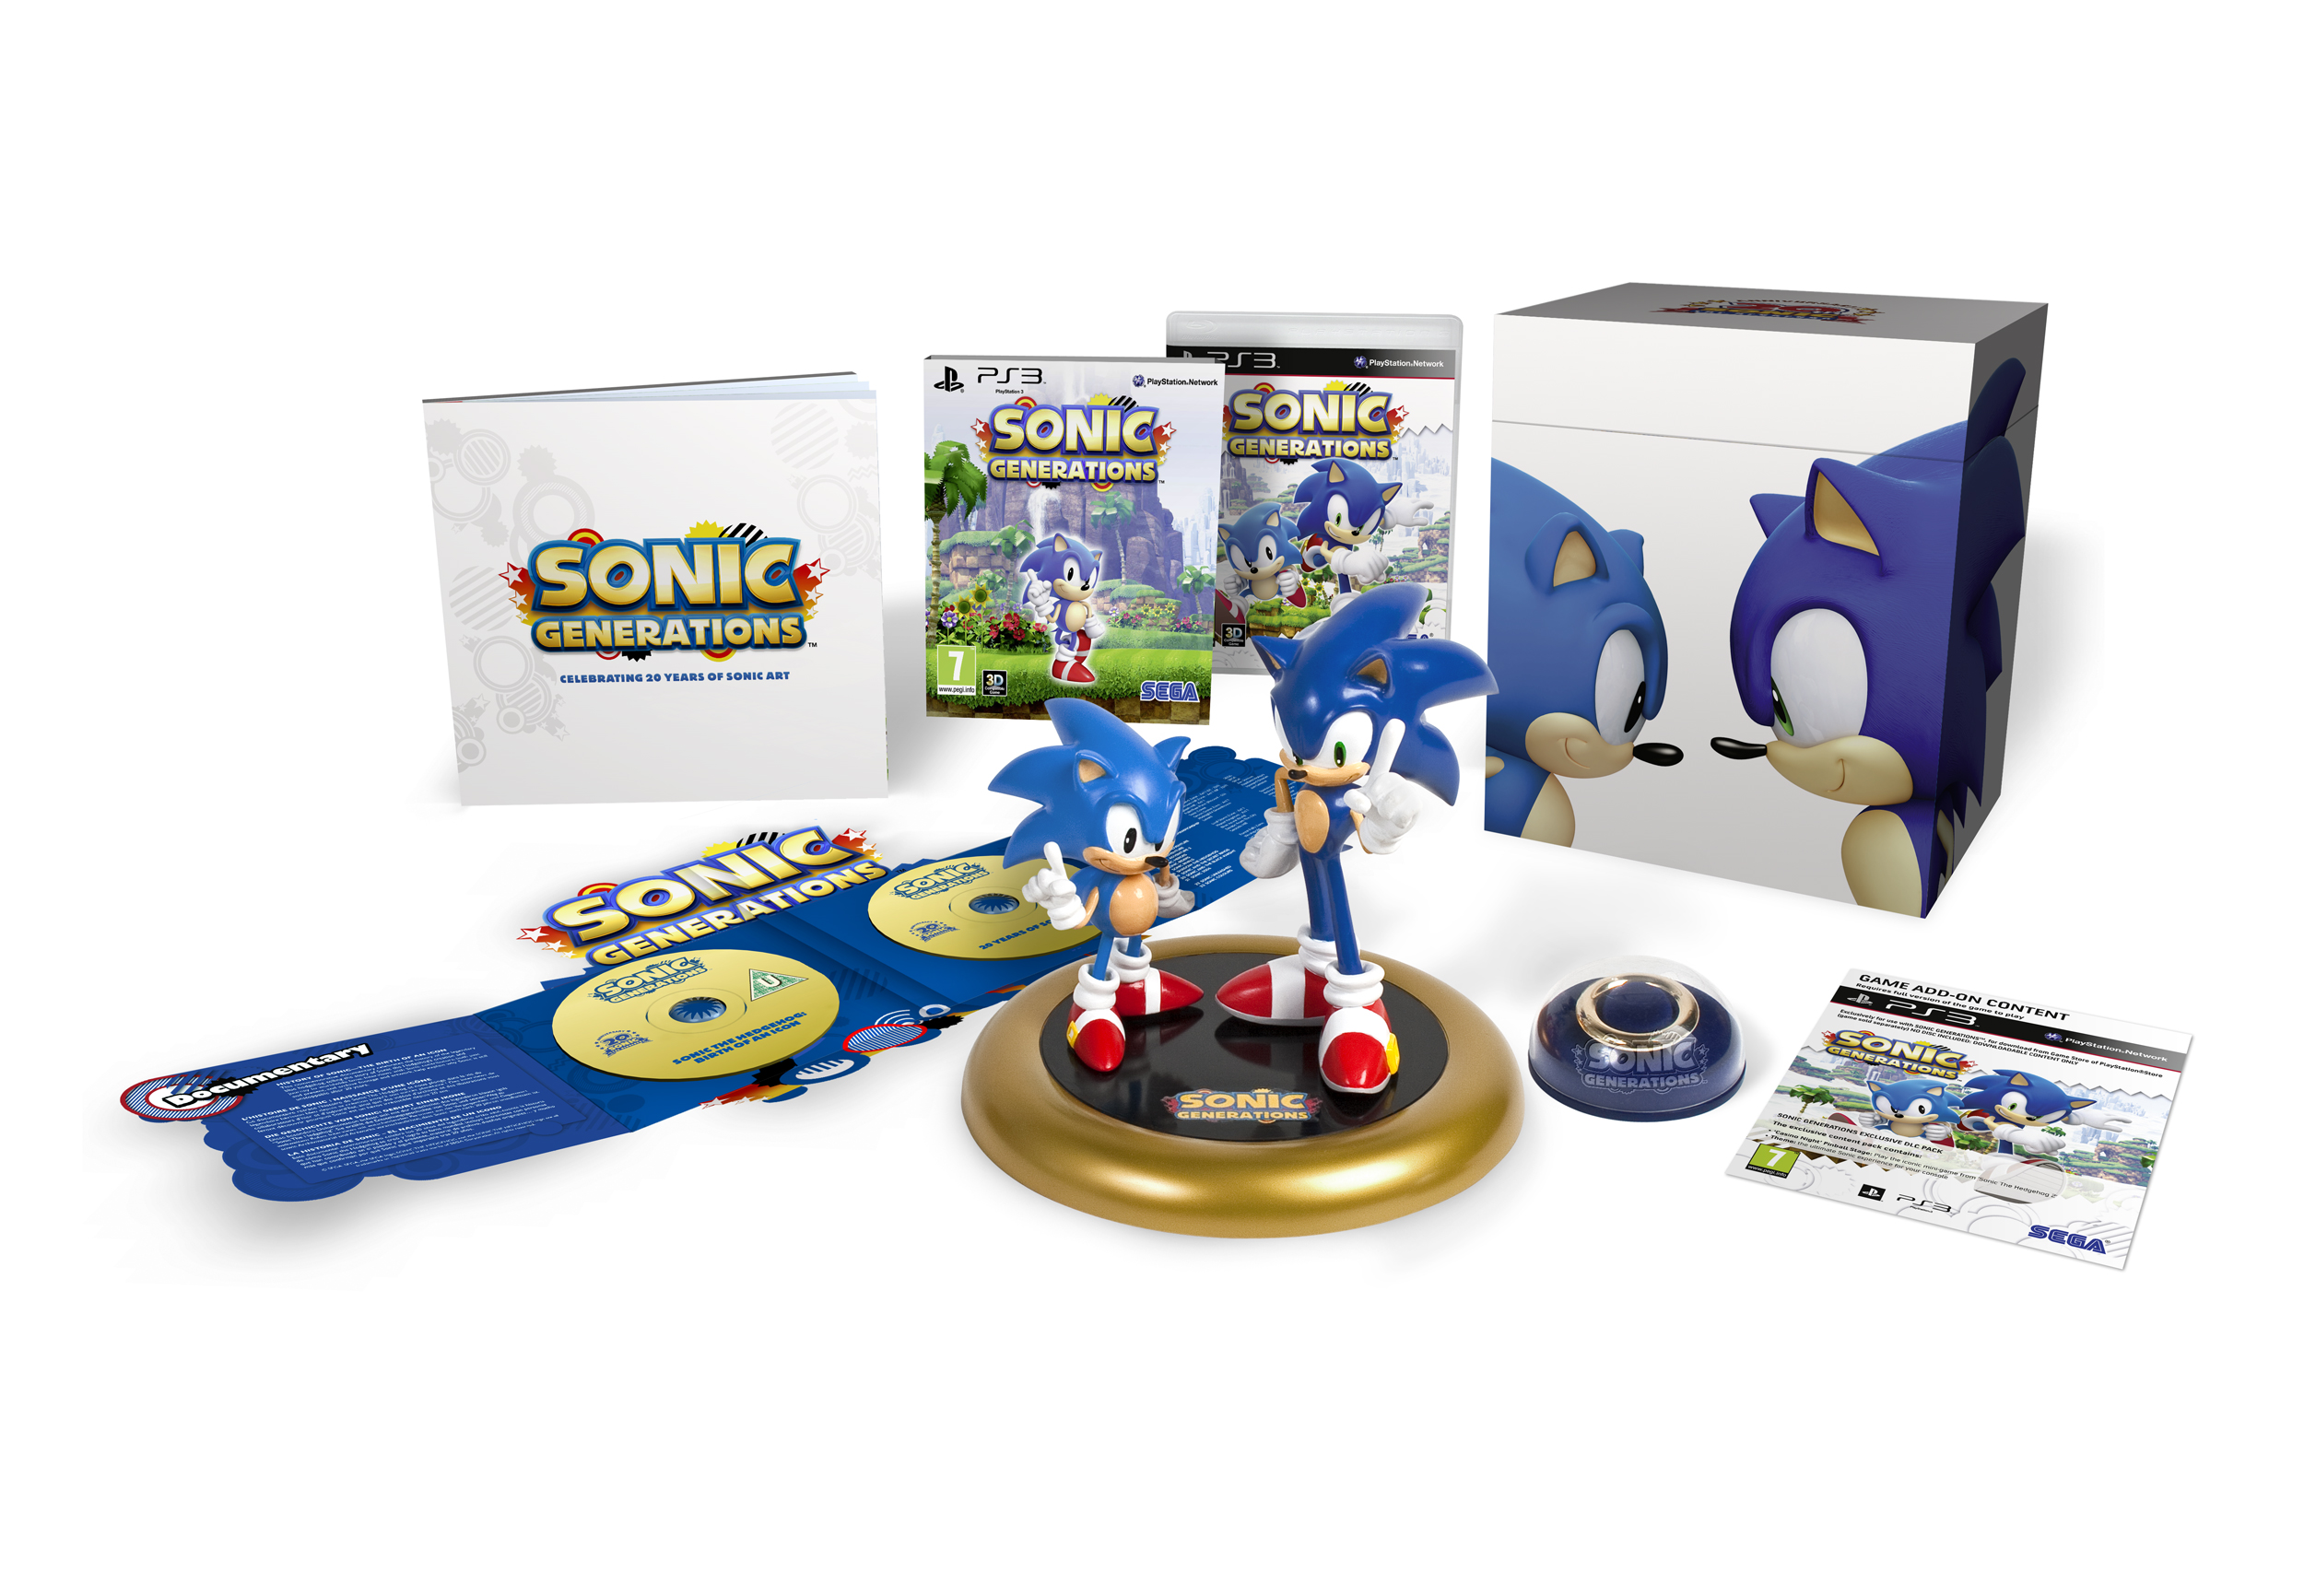 Sonic Generations PS3 Collector's Edition